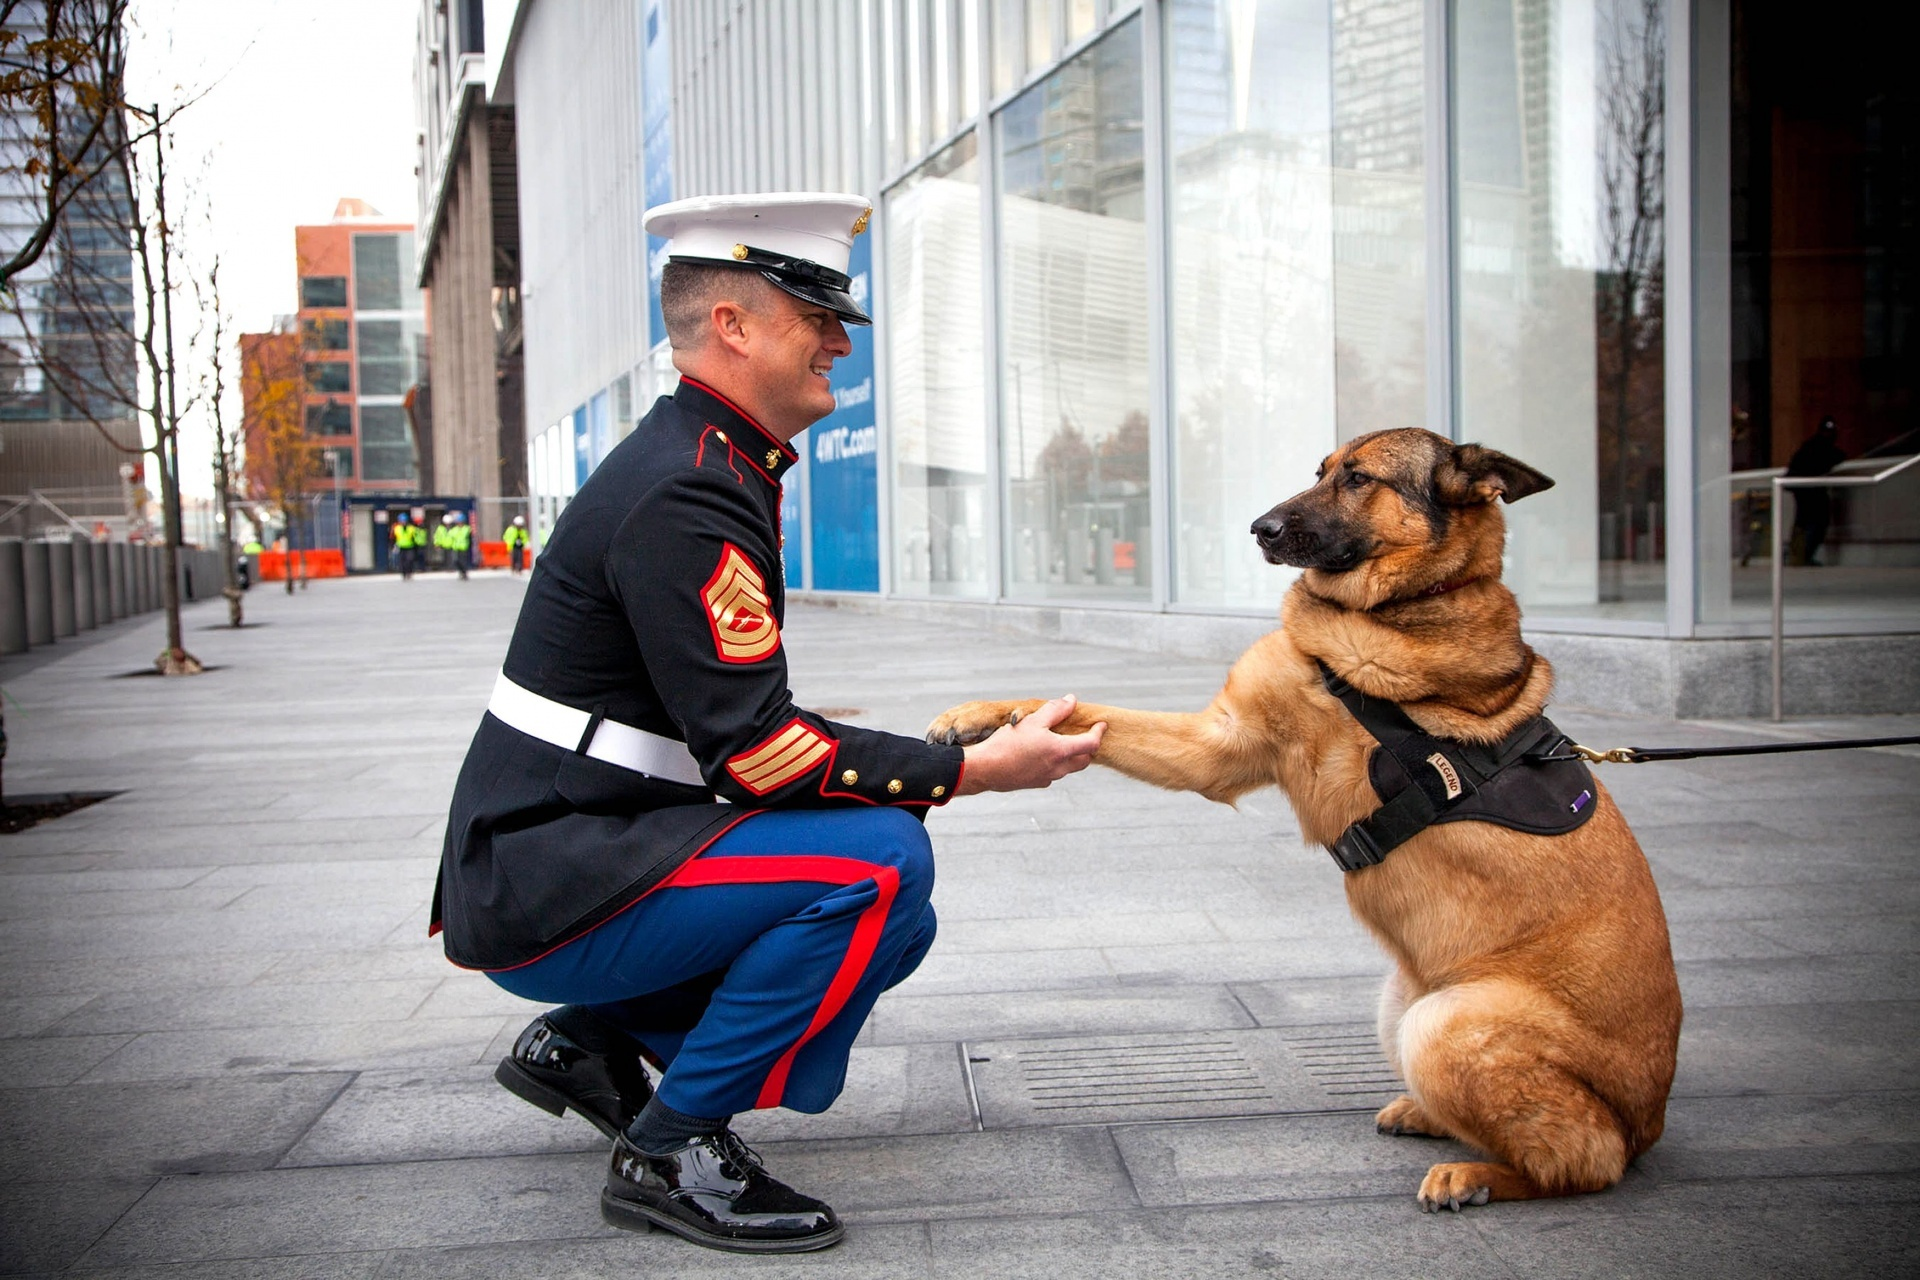 Retired US Marine Corps dog Lucca, who has been honoured with the PDSA Dickin Medal - the animal equivalent of the Victoria Cross, after she protected the lives of allied troops in Iraq and Afghanistan.